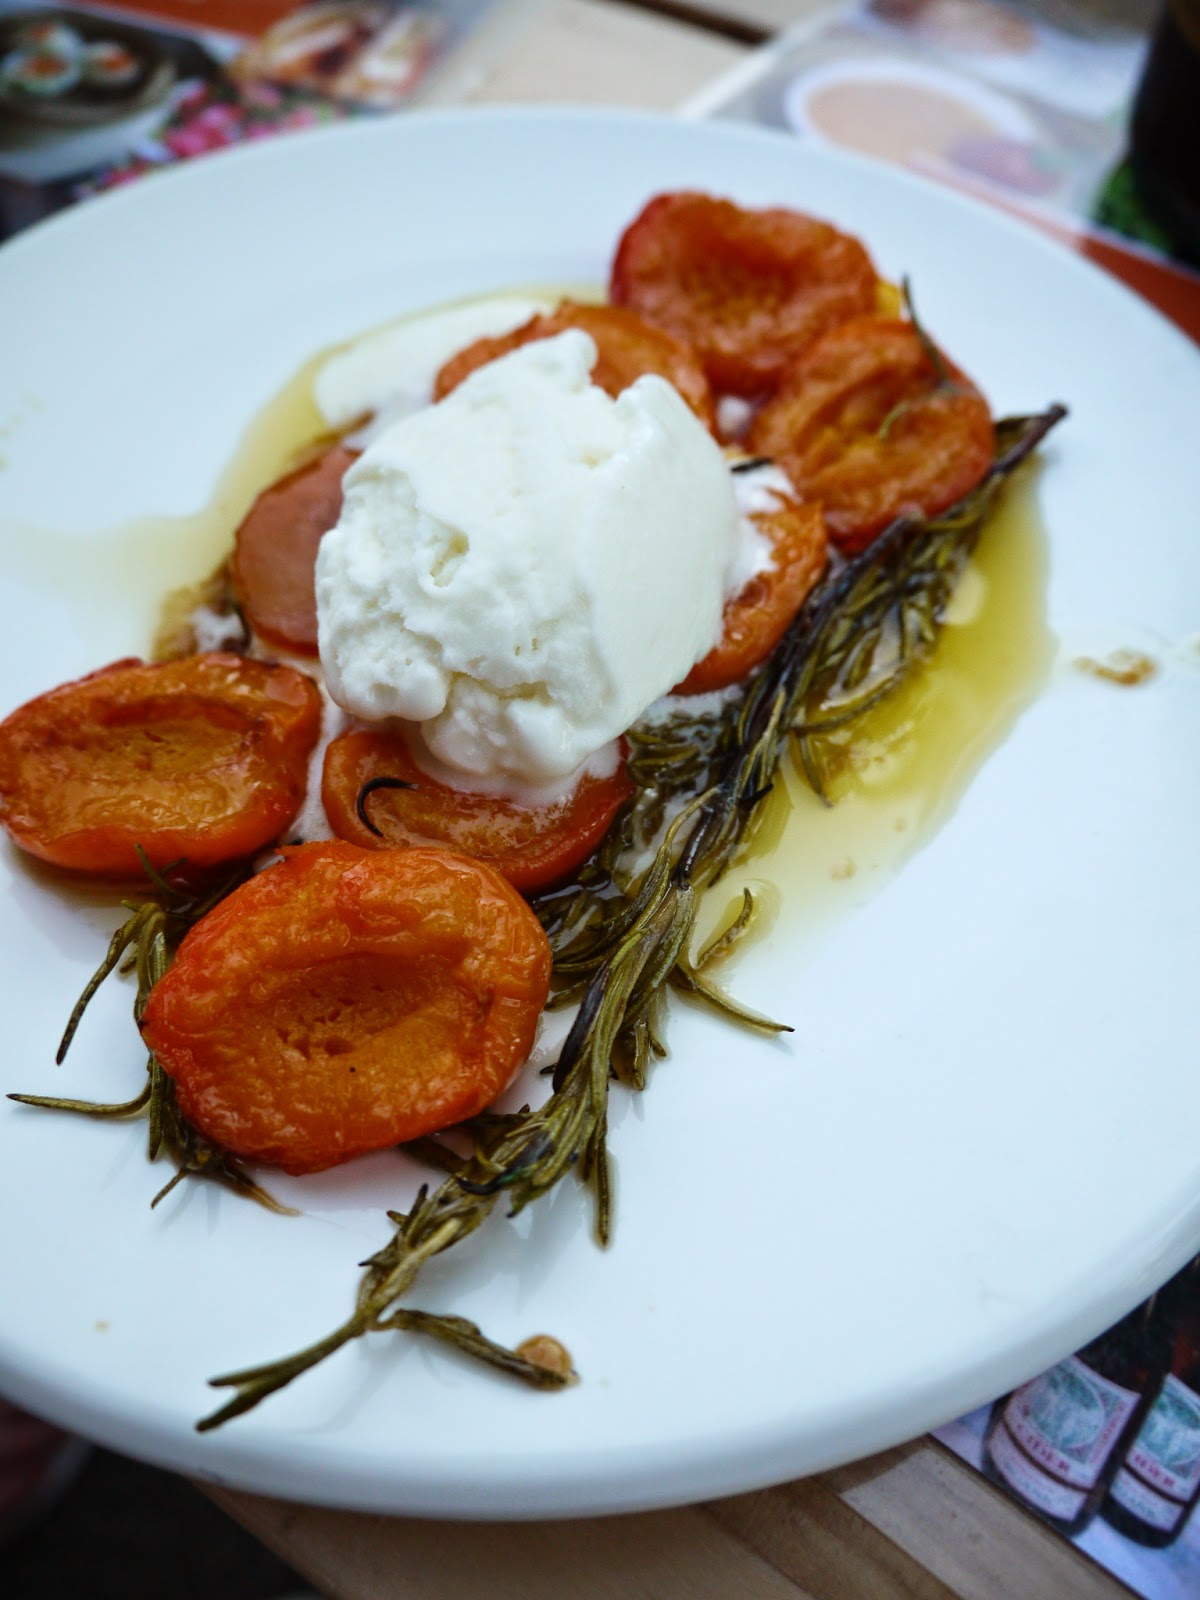 Rosemary Apricots by Appetit Voyage